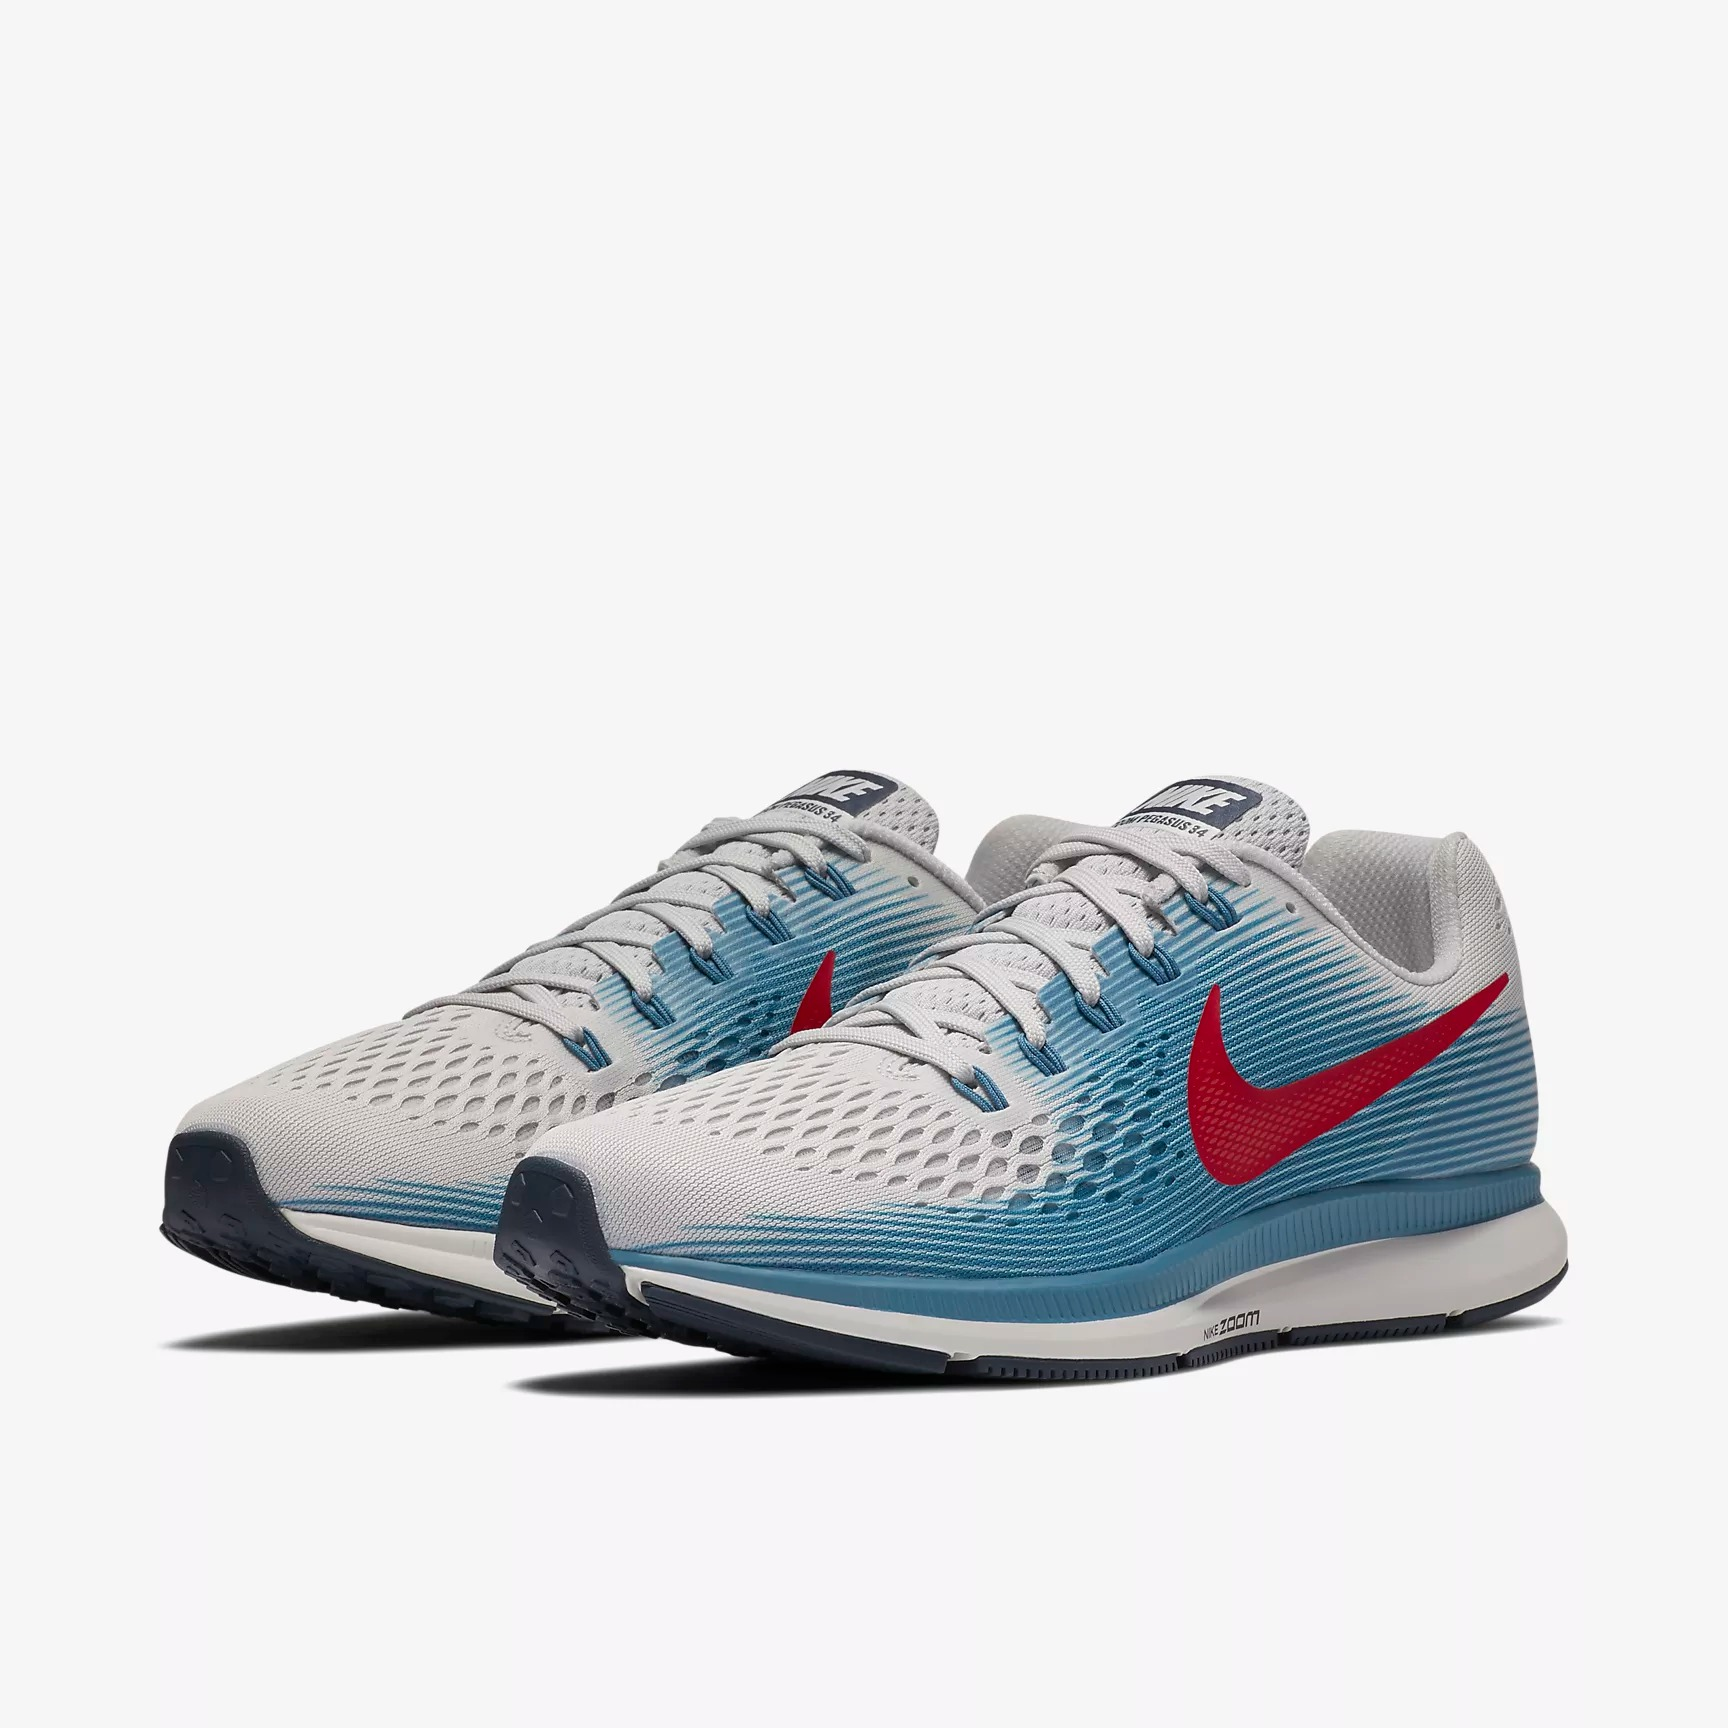 50a23bdbfb3 Nike Air Zoom Pegasus 34 Running Shoes - SPORT SHOES RUNNING SHOES -  Superfanas.lt